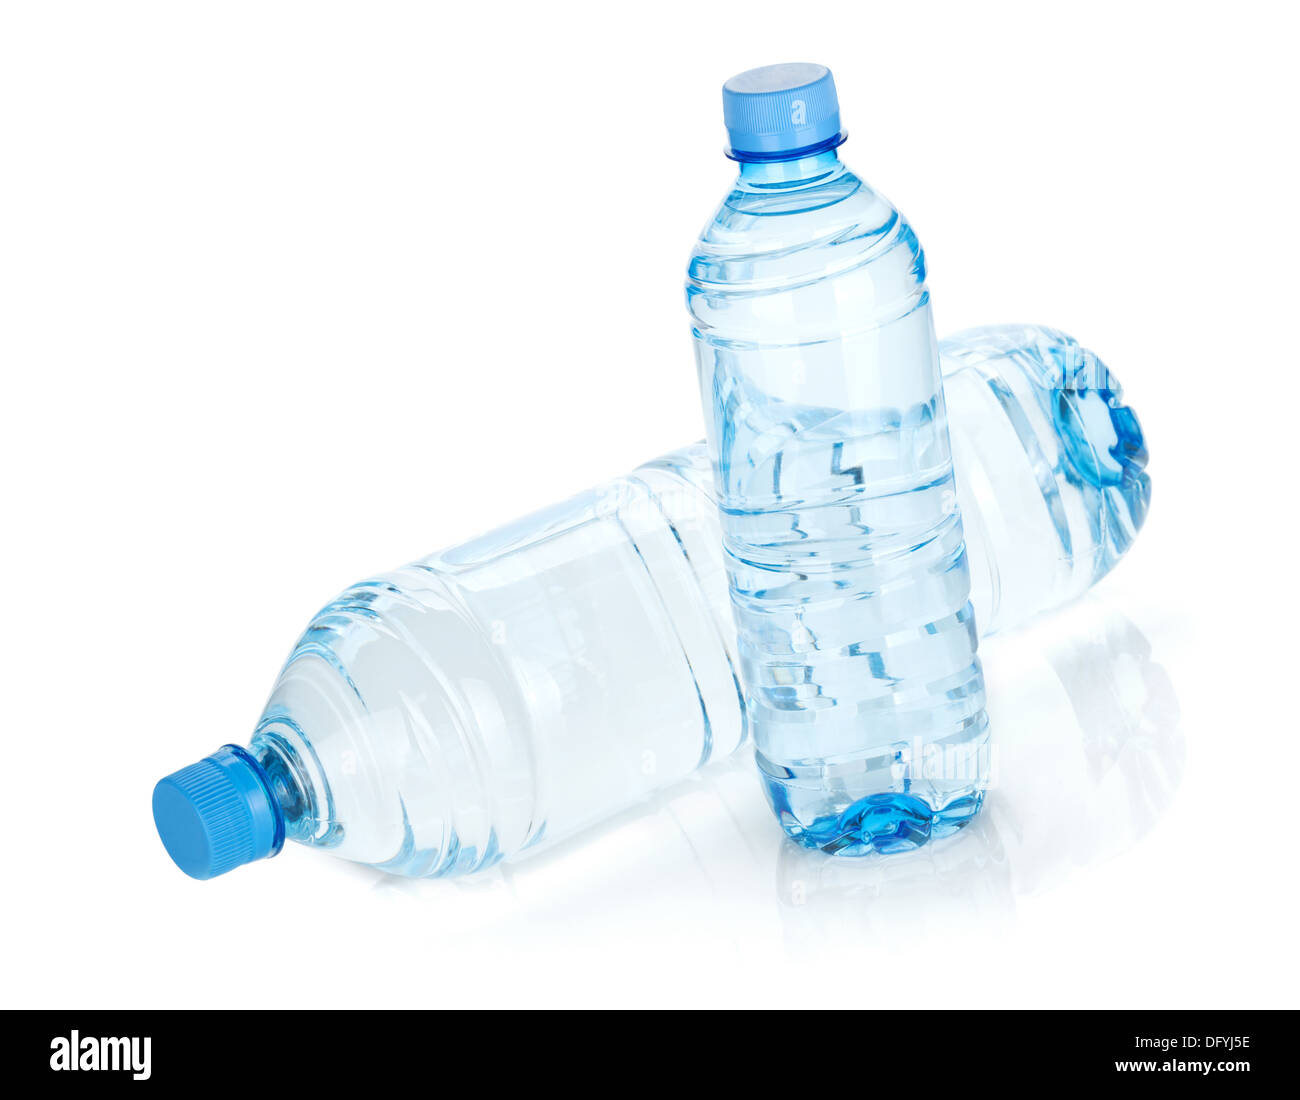 Two water bottles. Isolated on white background - Stock Image